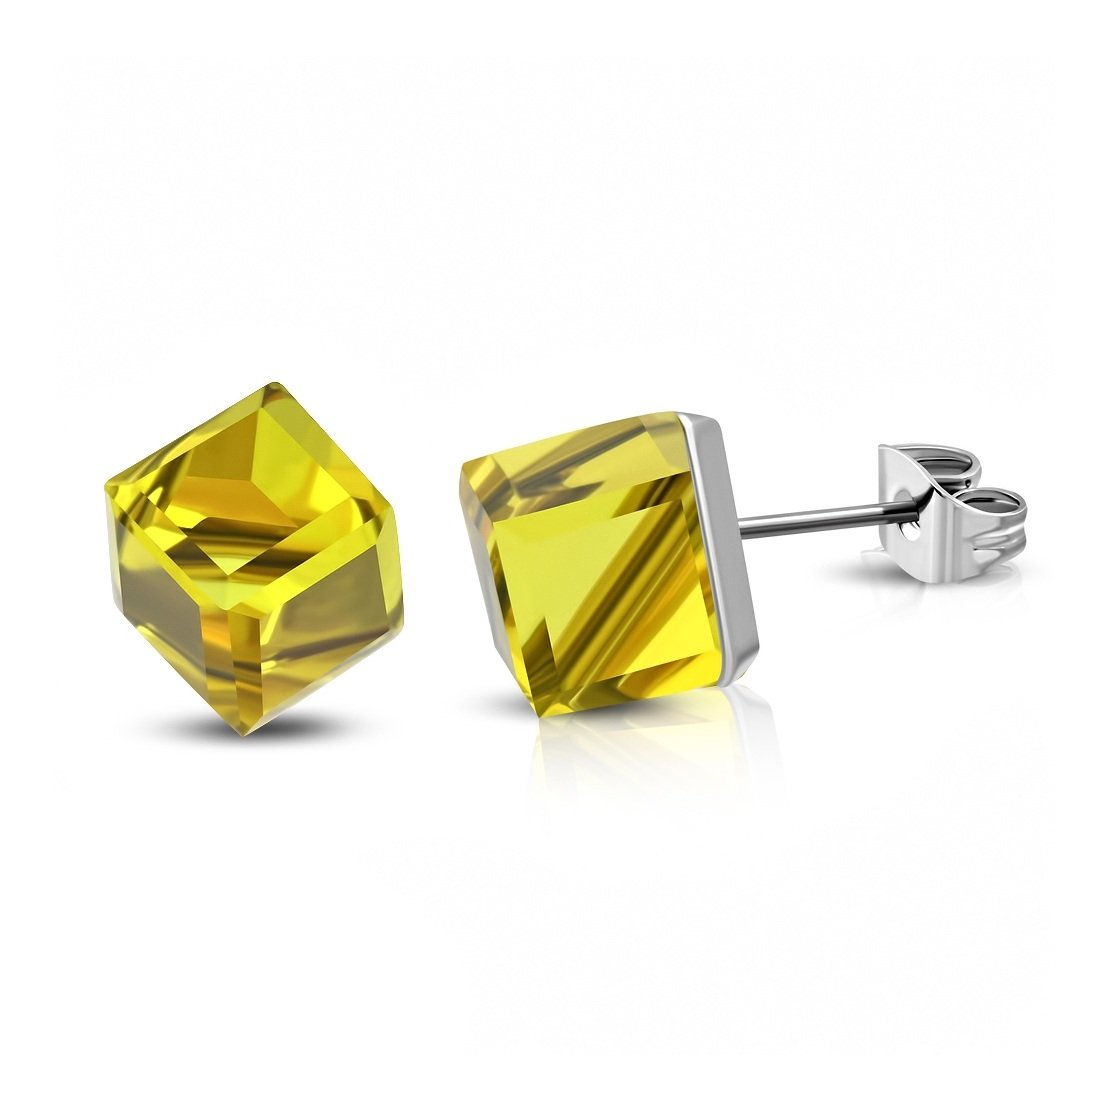 Stainless Steel Stud Earrings with Cube Yellow CZ pair